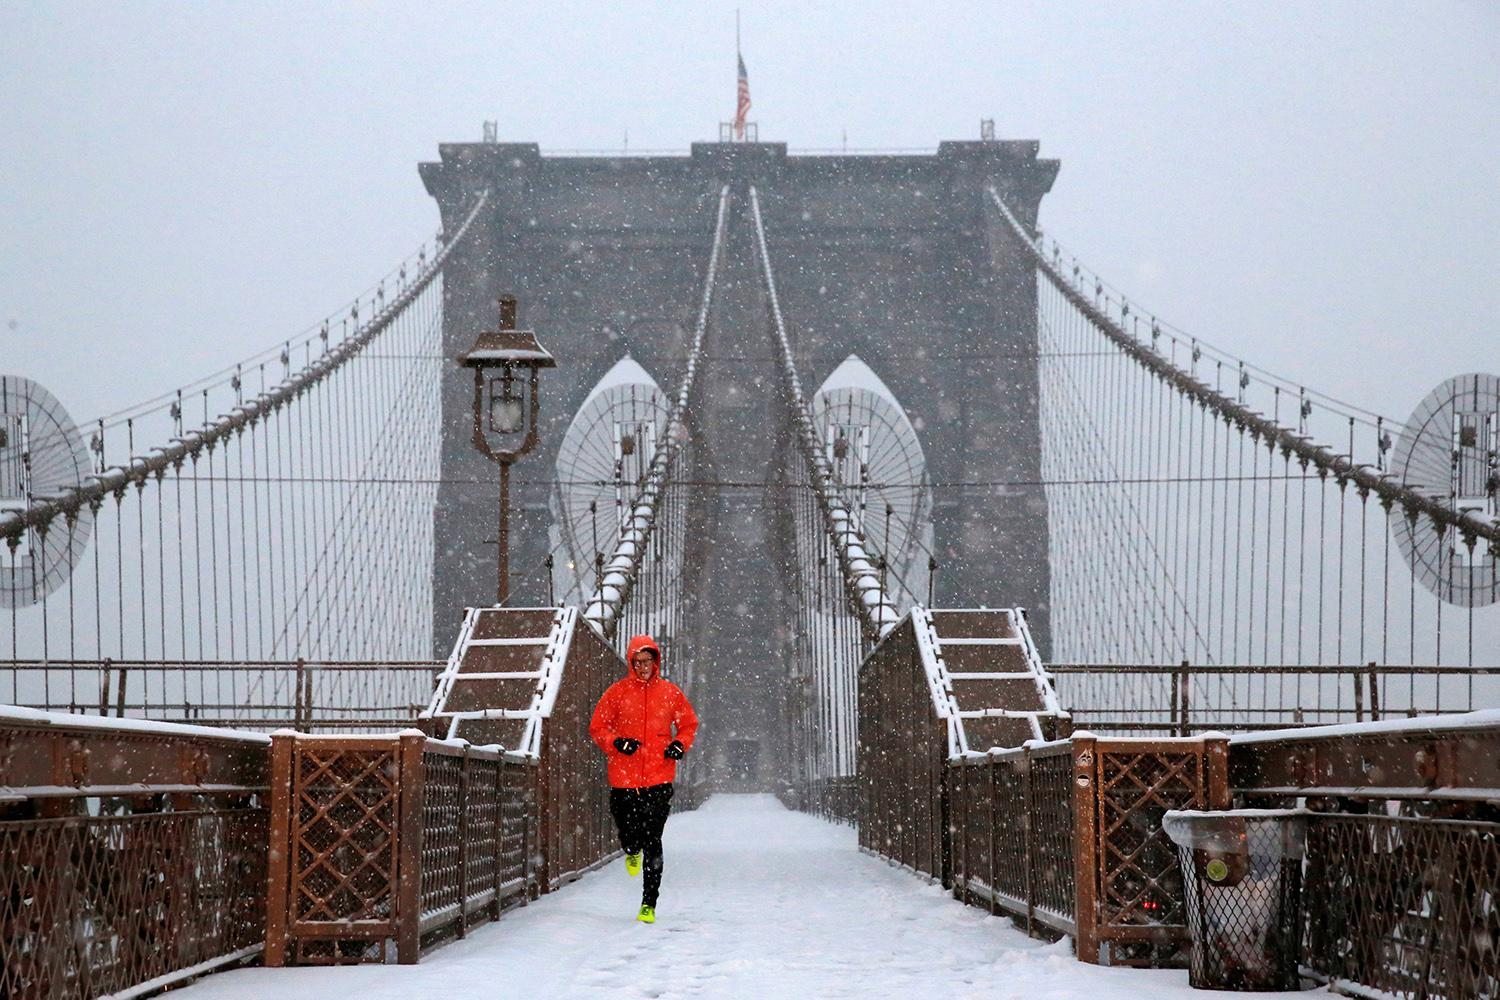 <p>A man runs over the Brooklyn Bridge during morning snow in Manhattan, New York City, Dec. 17, 2016. (Photo: Andrew Kelly/Reuters) </p>